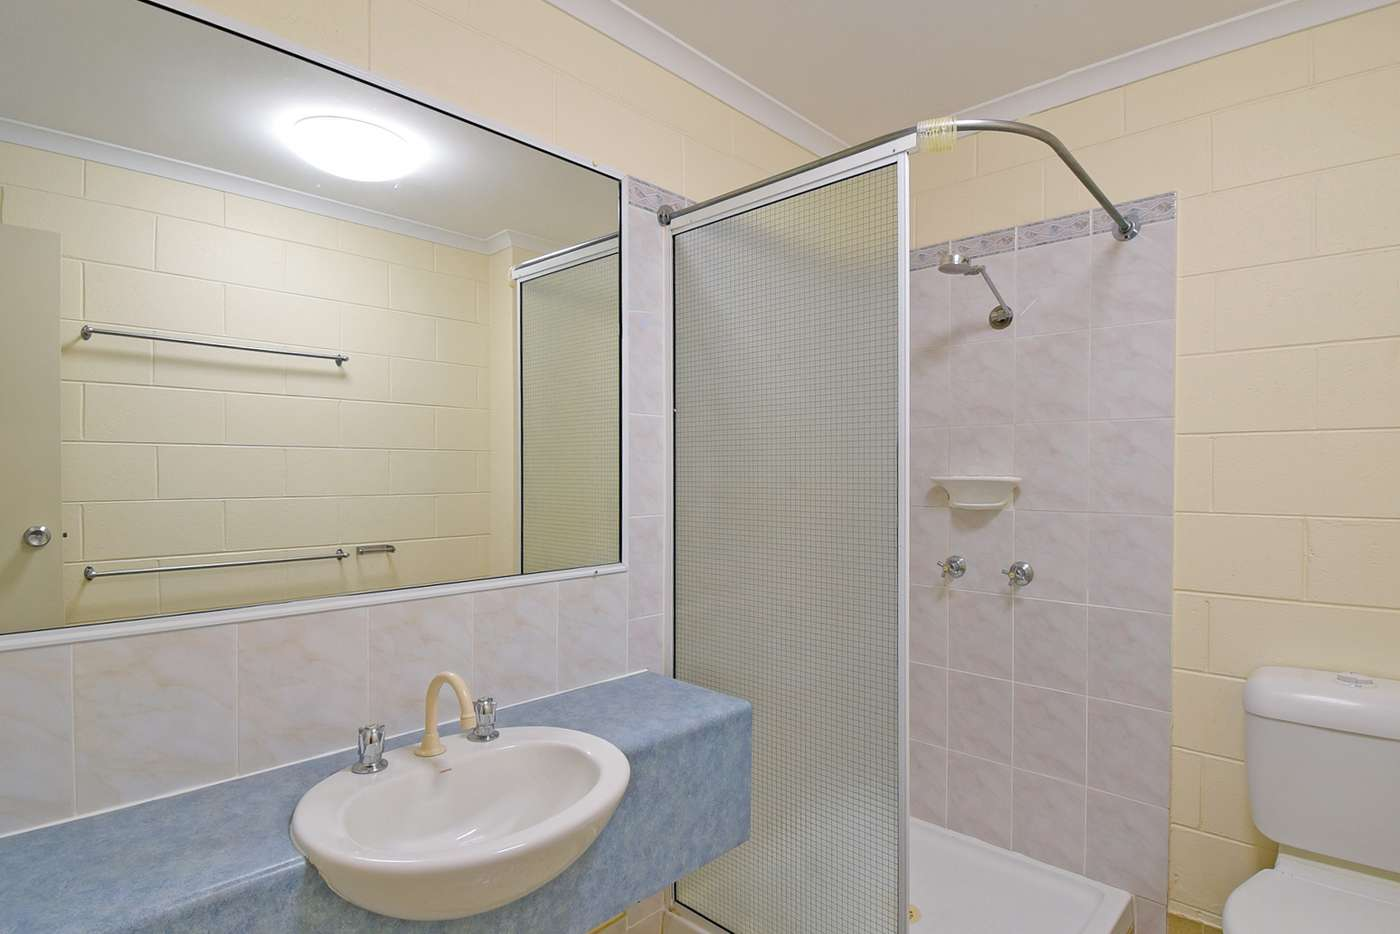 Sixth view of Homely unit listing, 3/43 Cook Street, North Ward QLD 4810